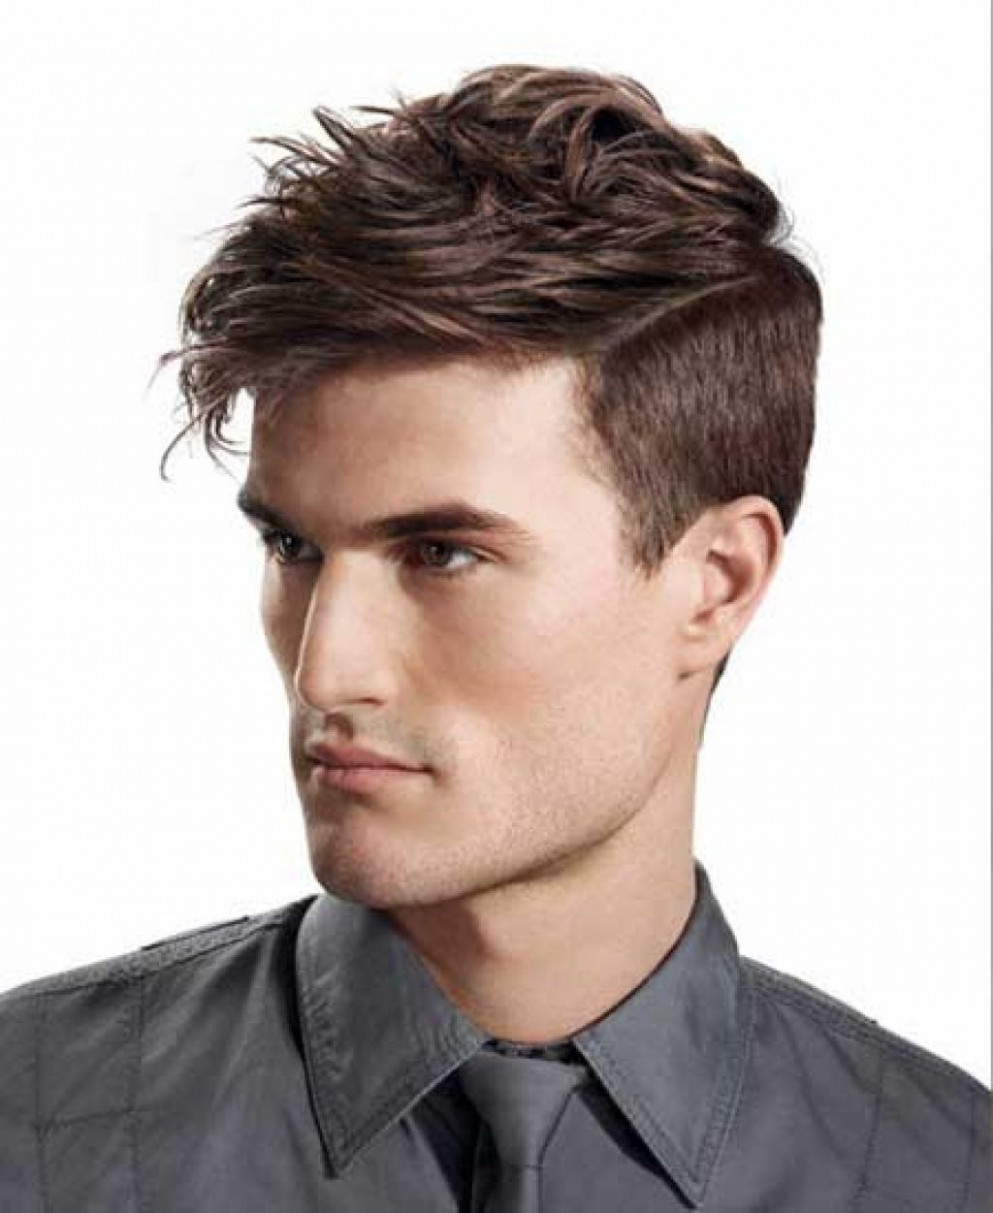 Haircuts for boys and teens with glasses | wide px: 9x9